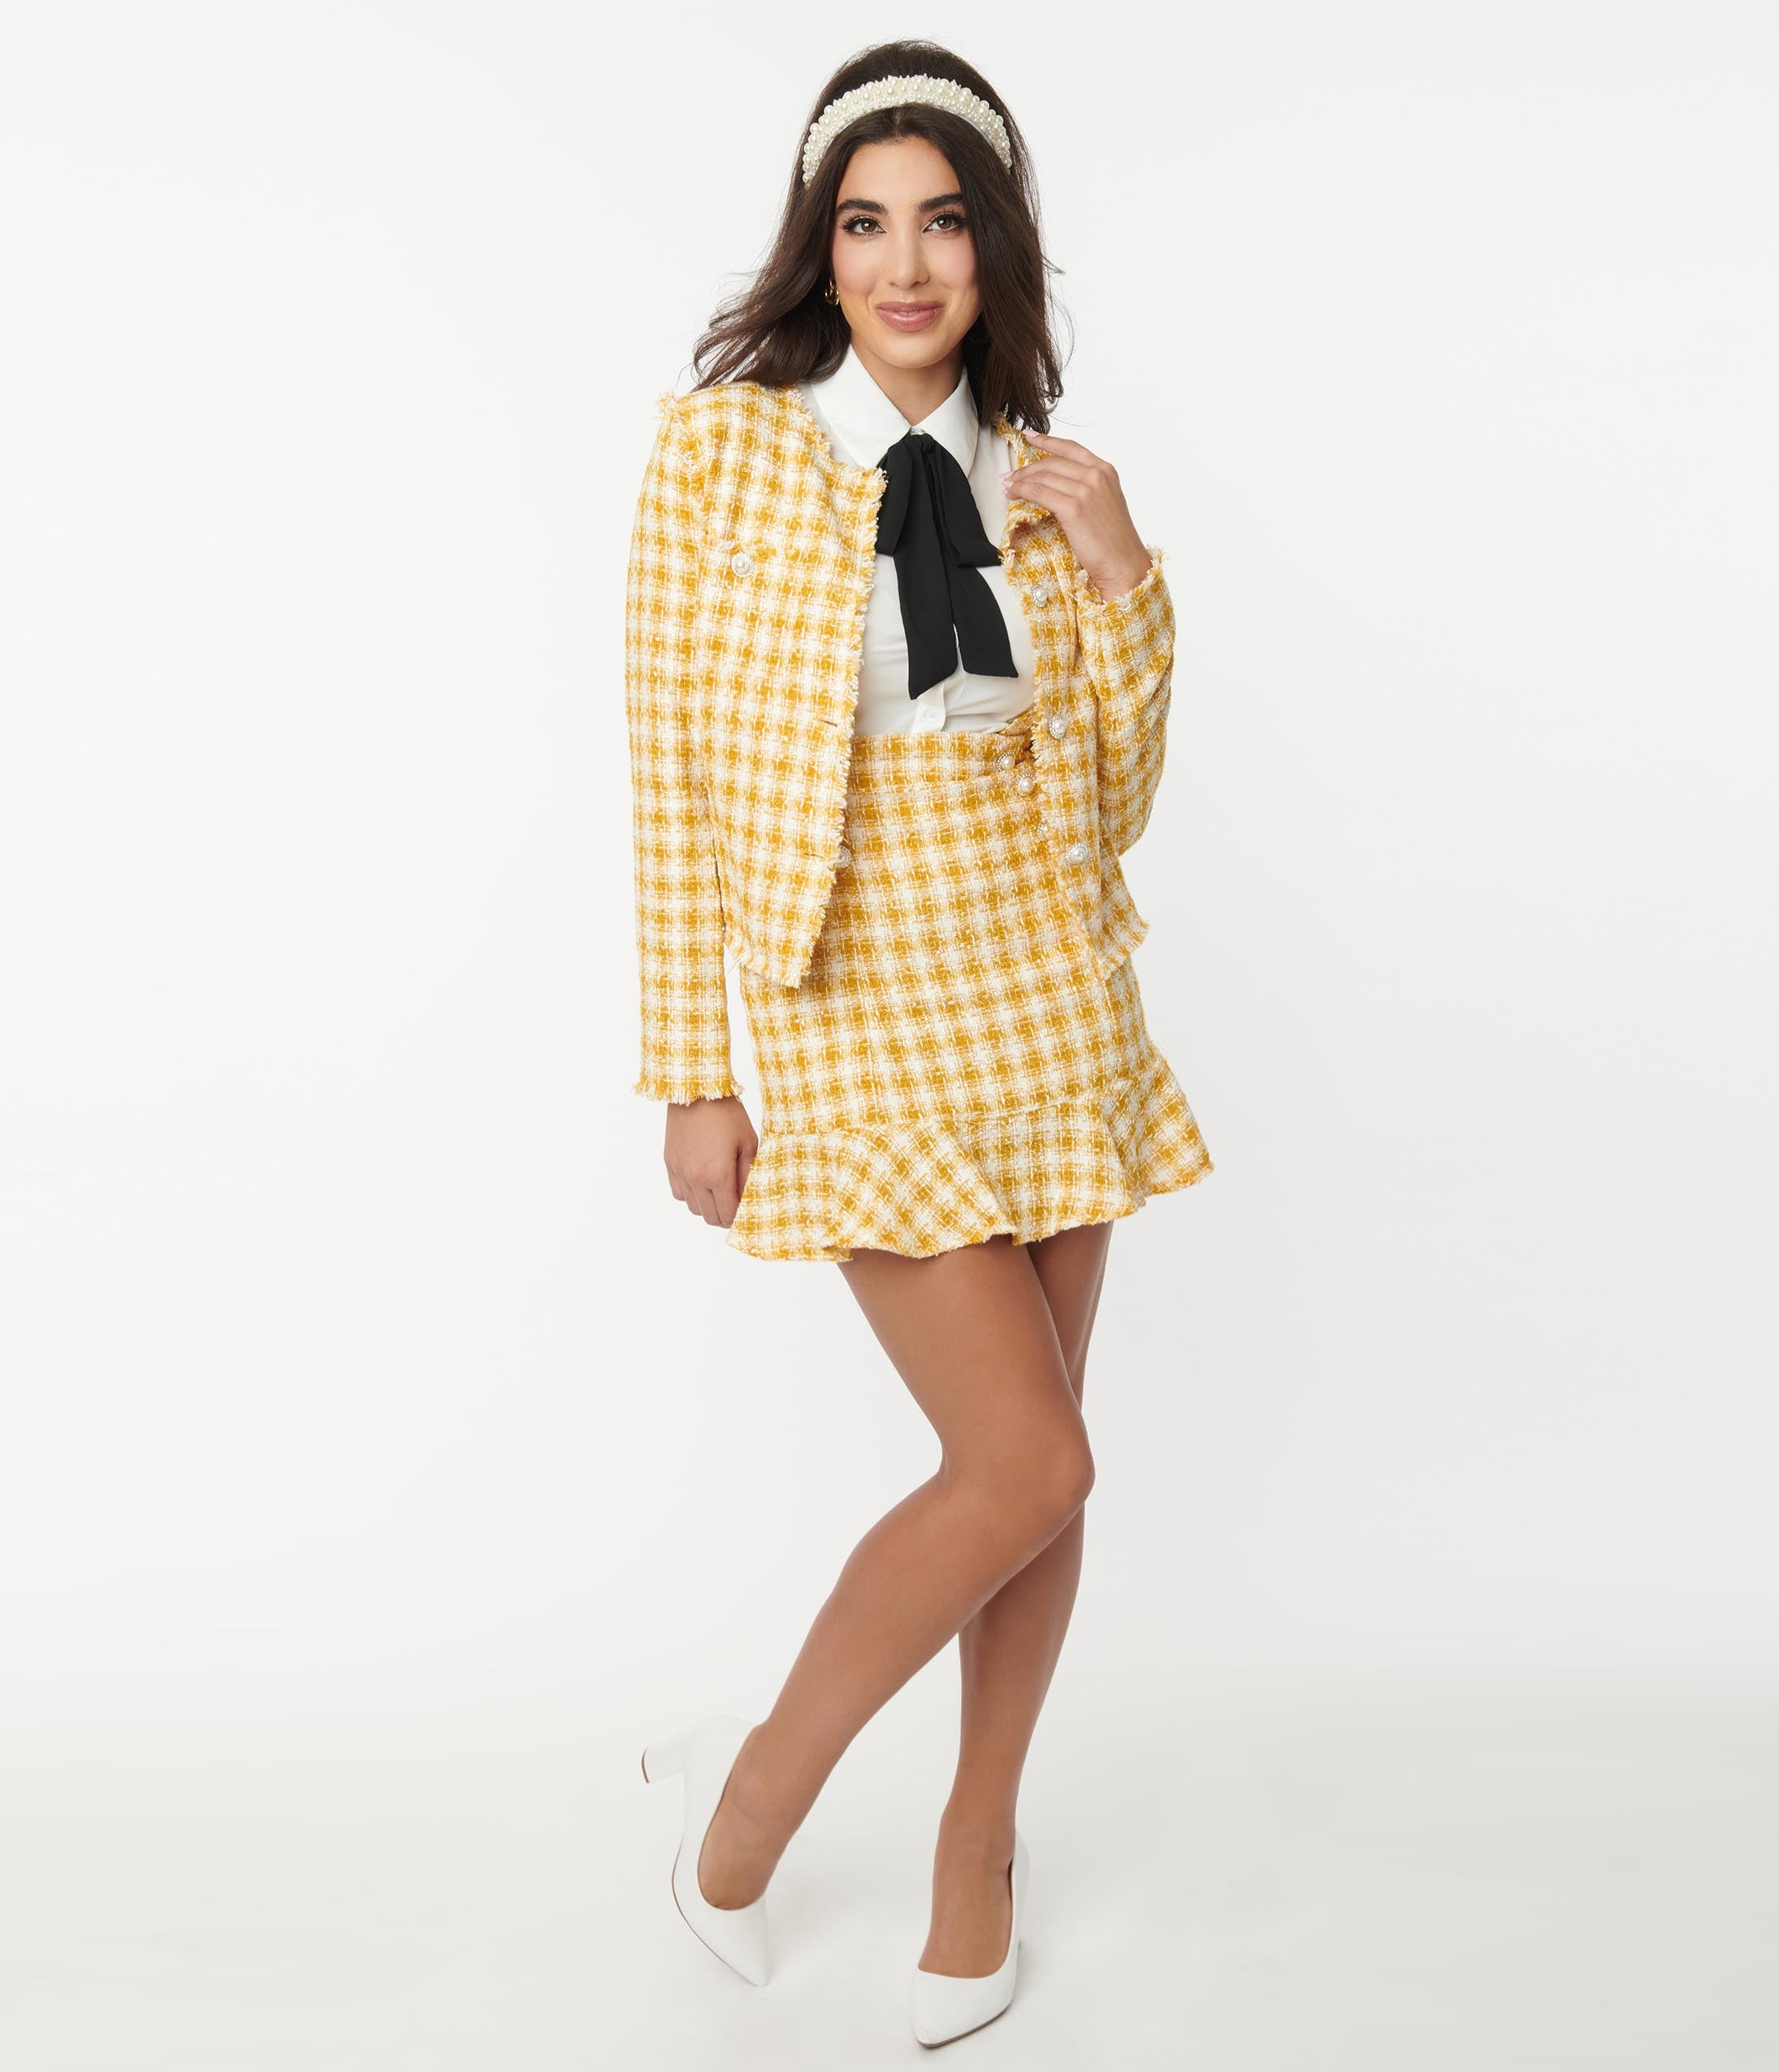 90s Clothing Outfits You Can Buy Now Mustard  Ivory Gingham Tweed Suspender Skirt $58.00 AT vintagedancer.com